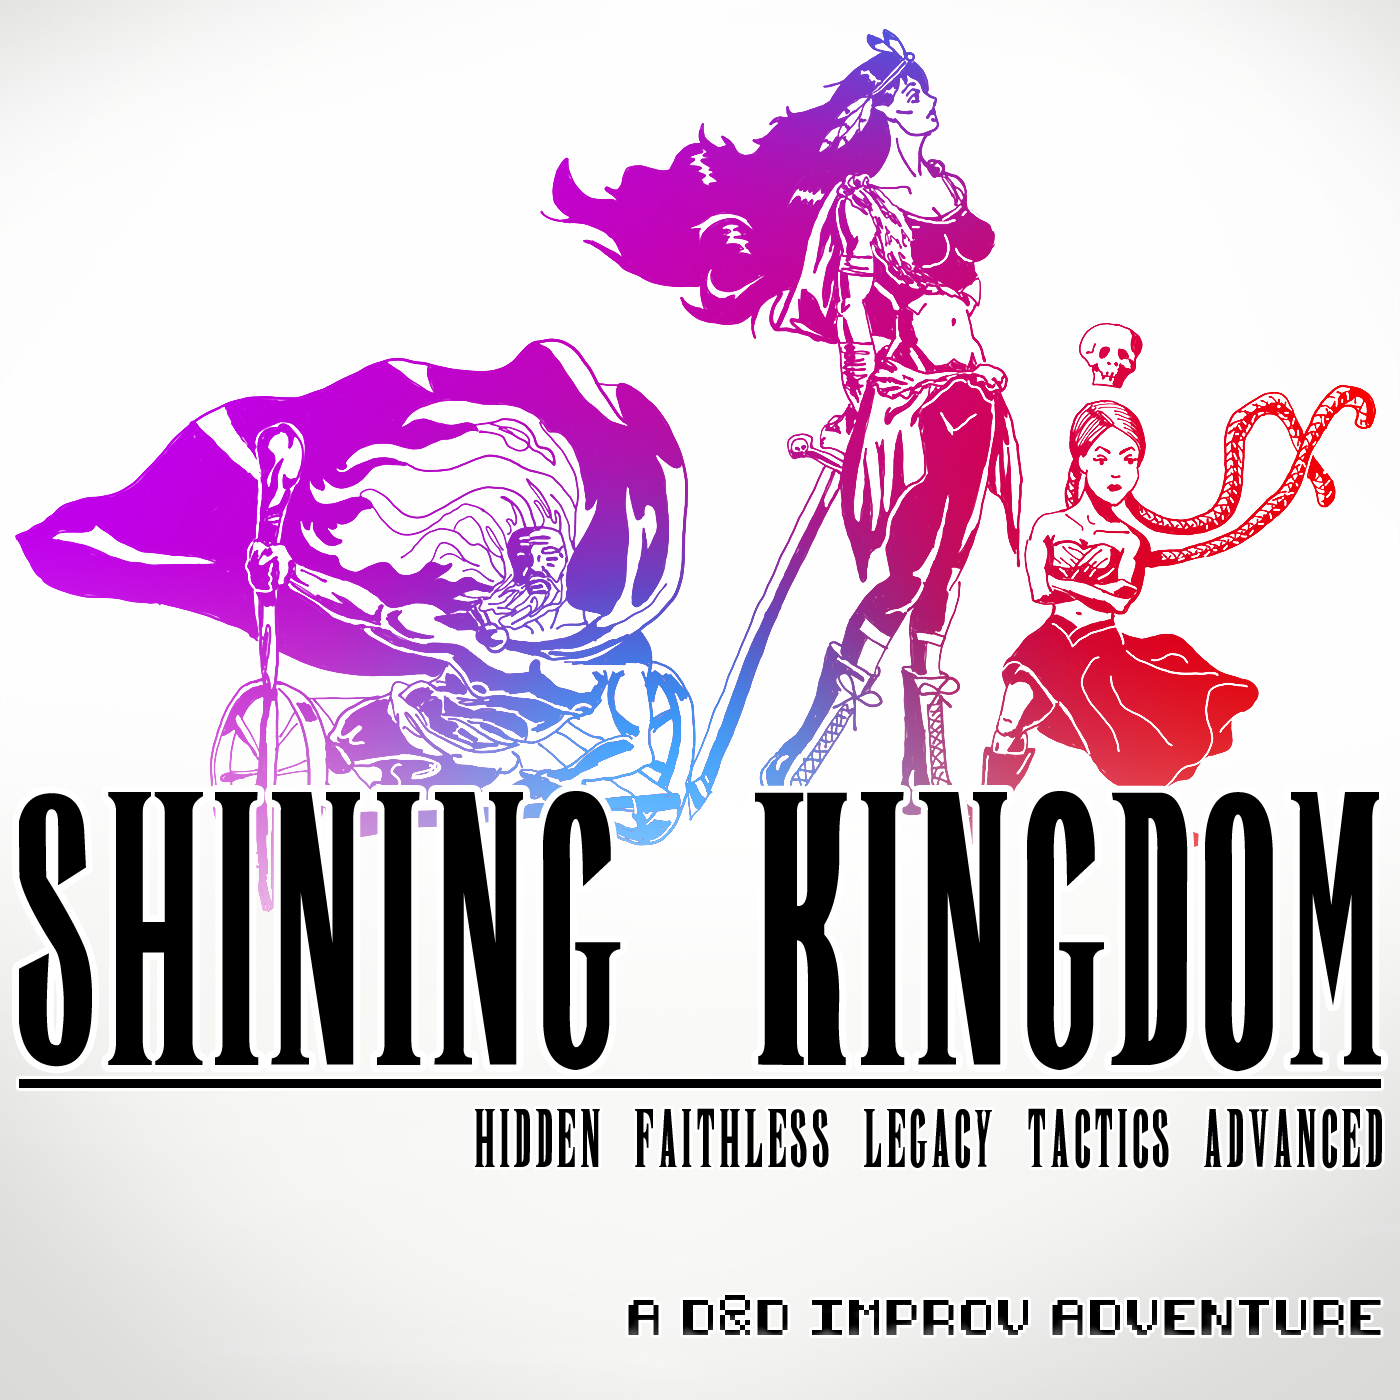 Shining Kingdom Logo.jpg